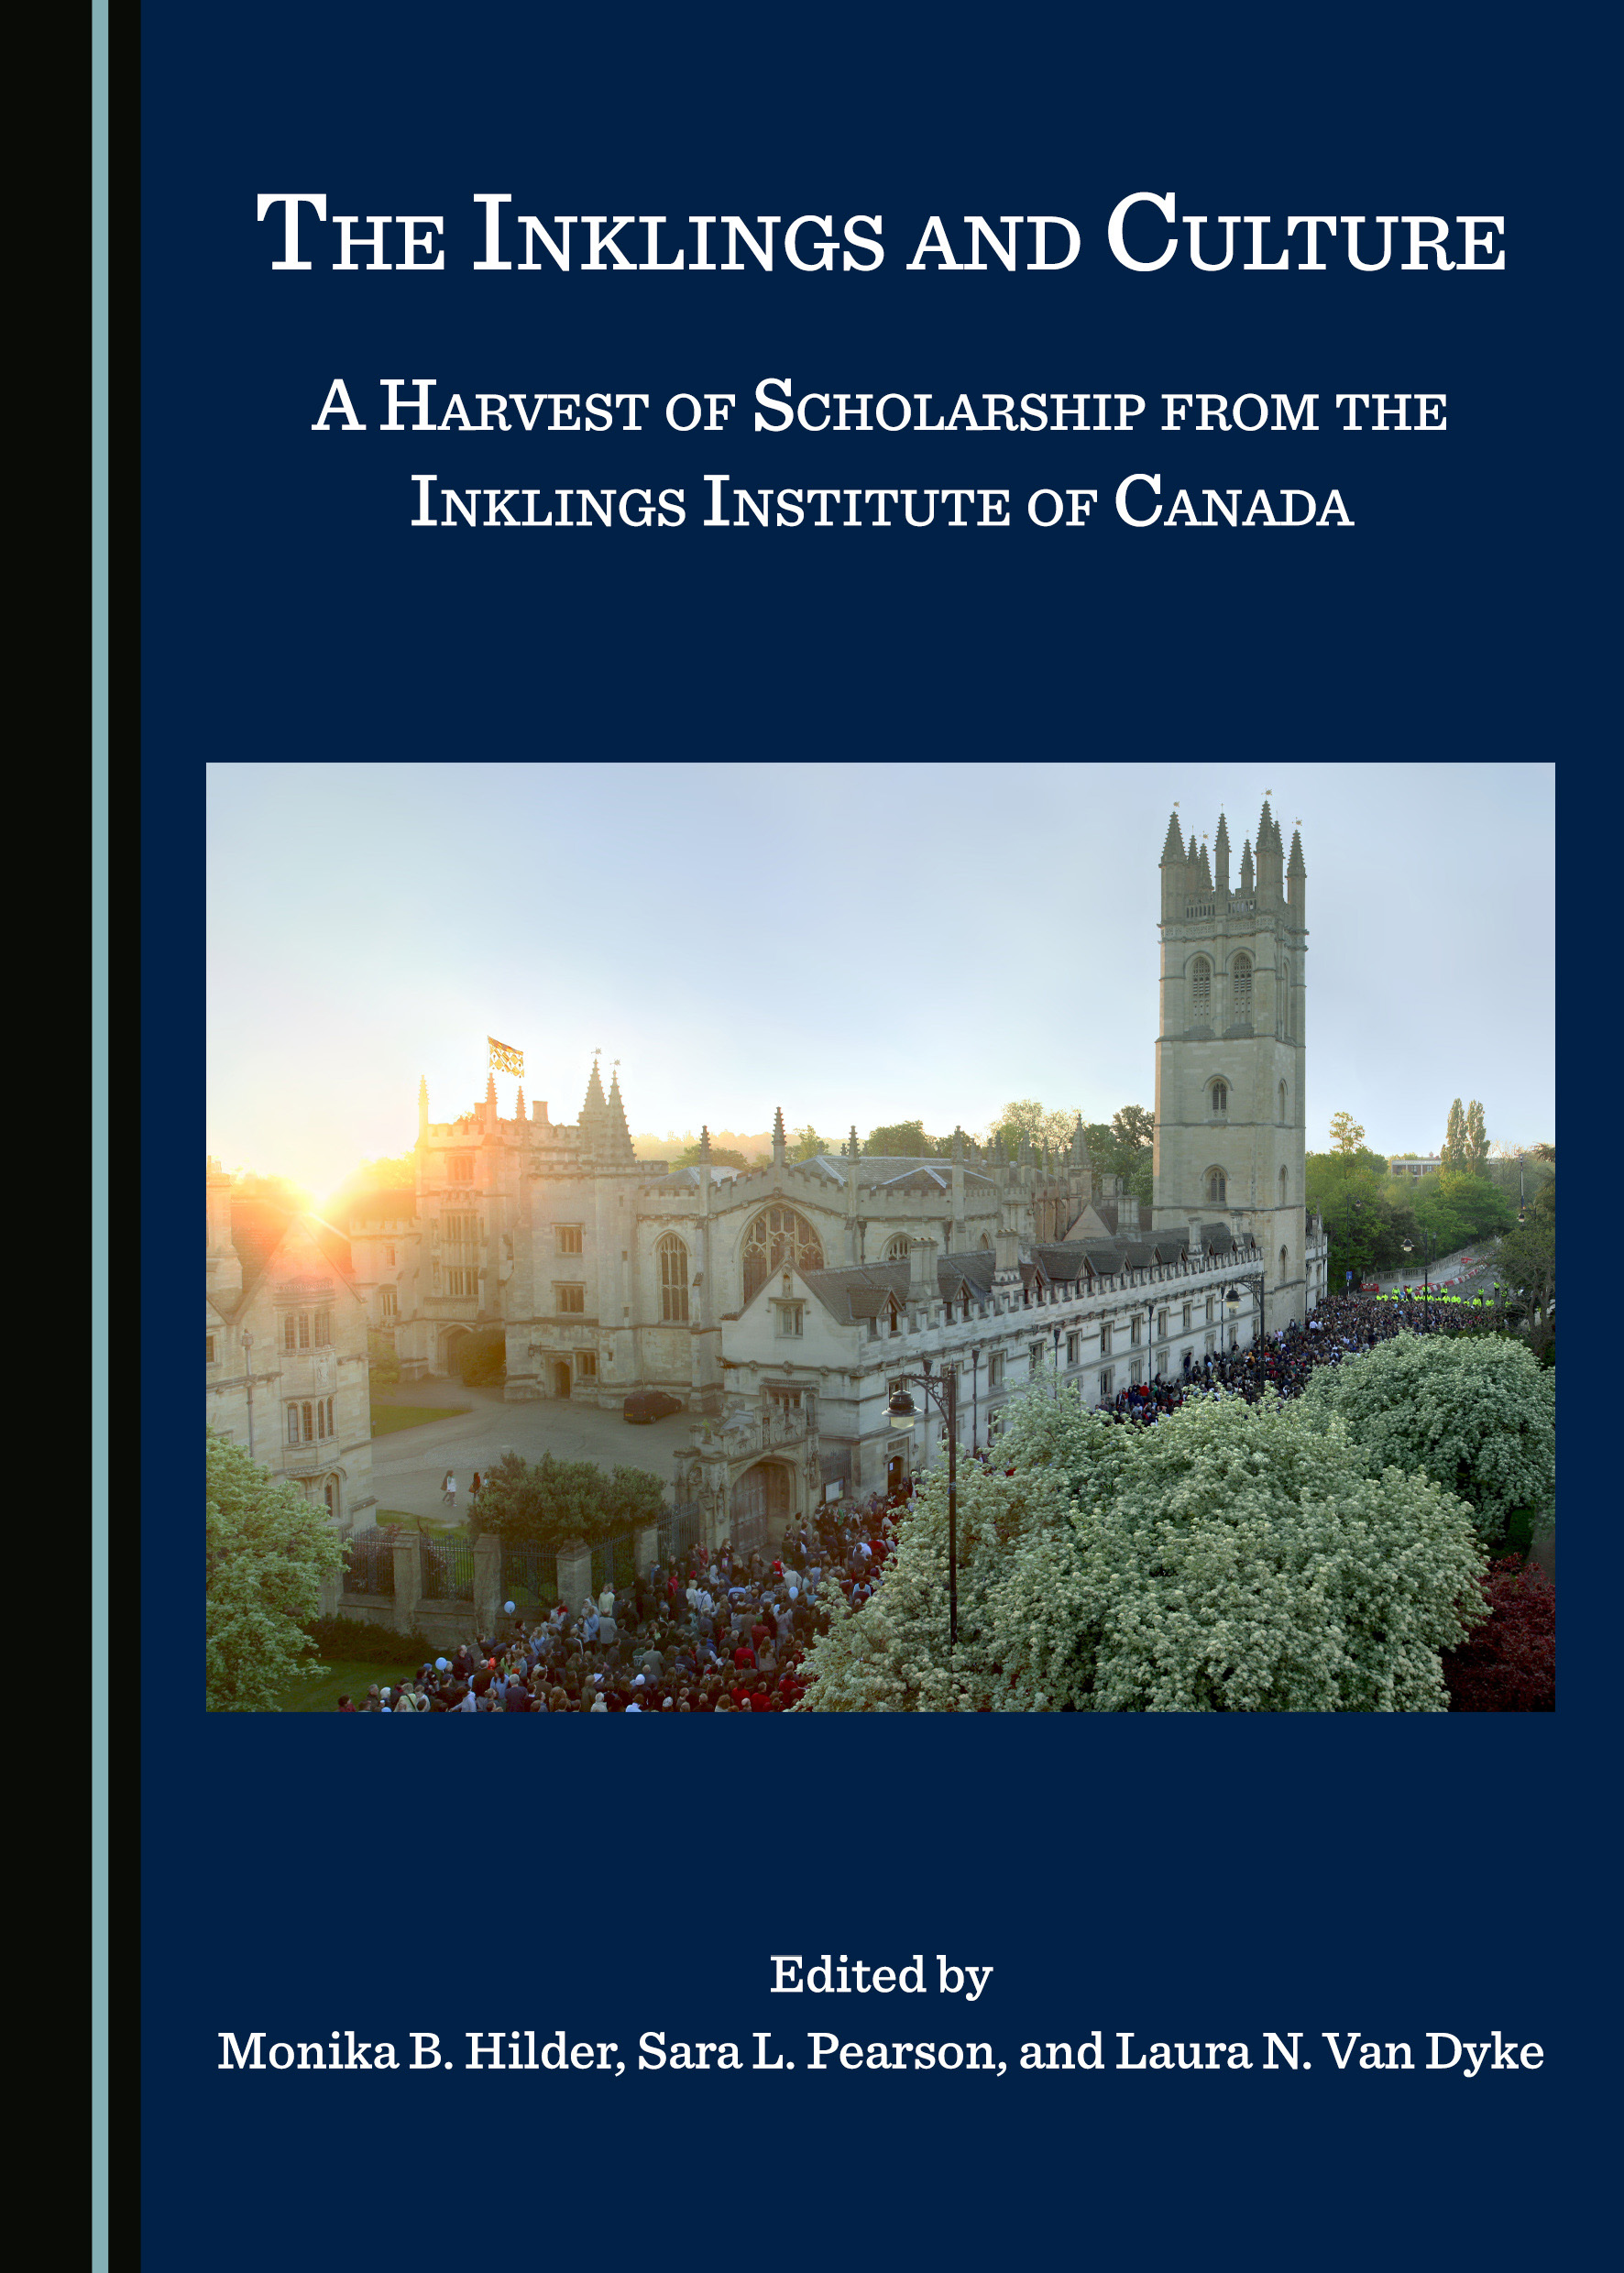 The Inklings and Culture: A Harvest of Scholarship from the Inklings Institute of Canada